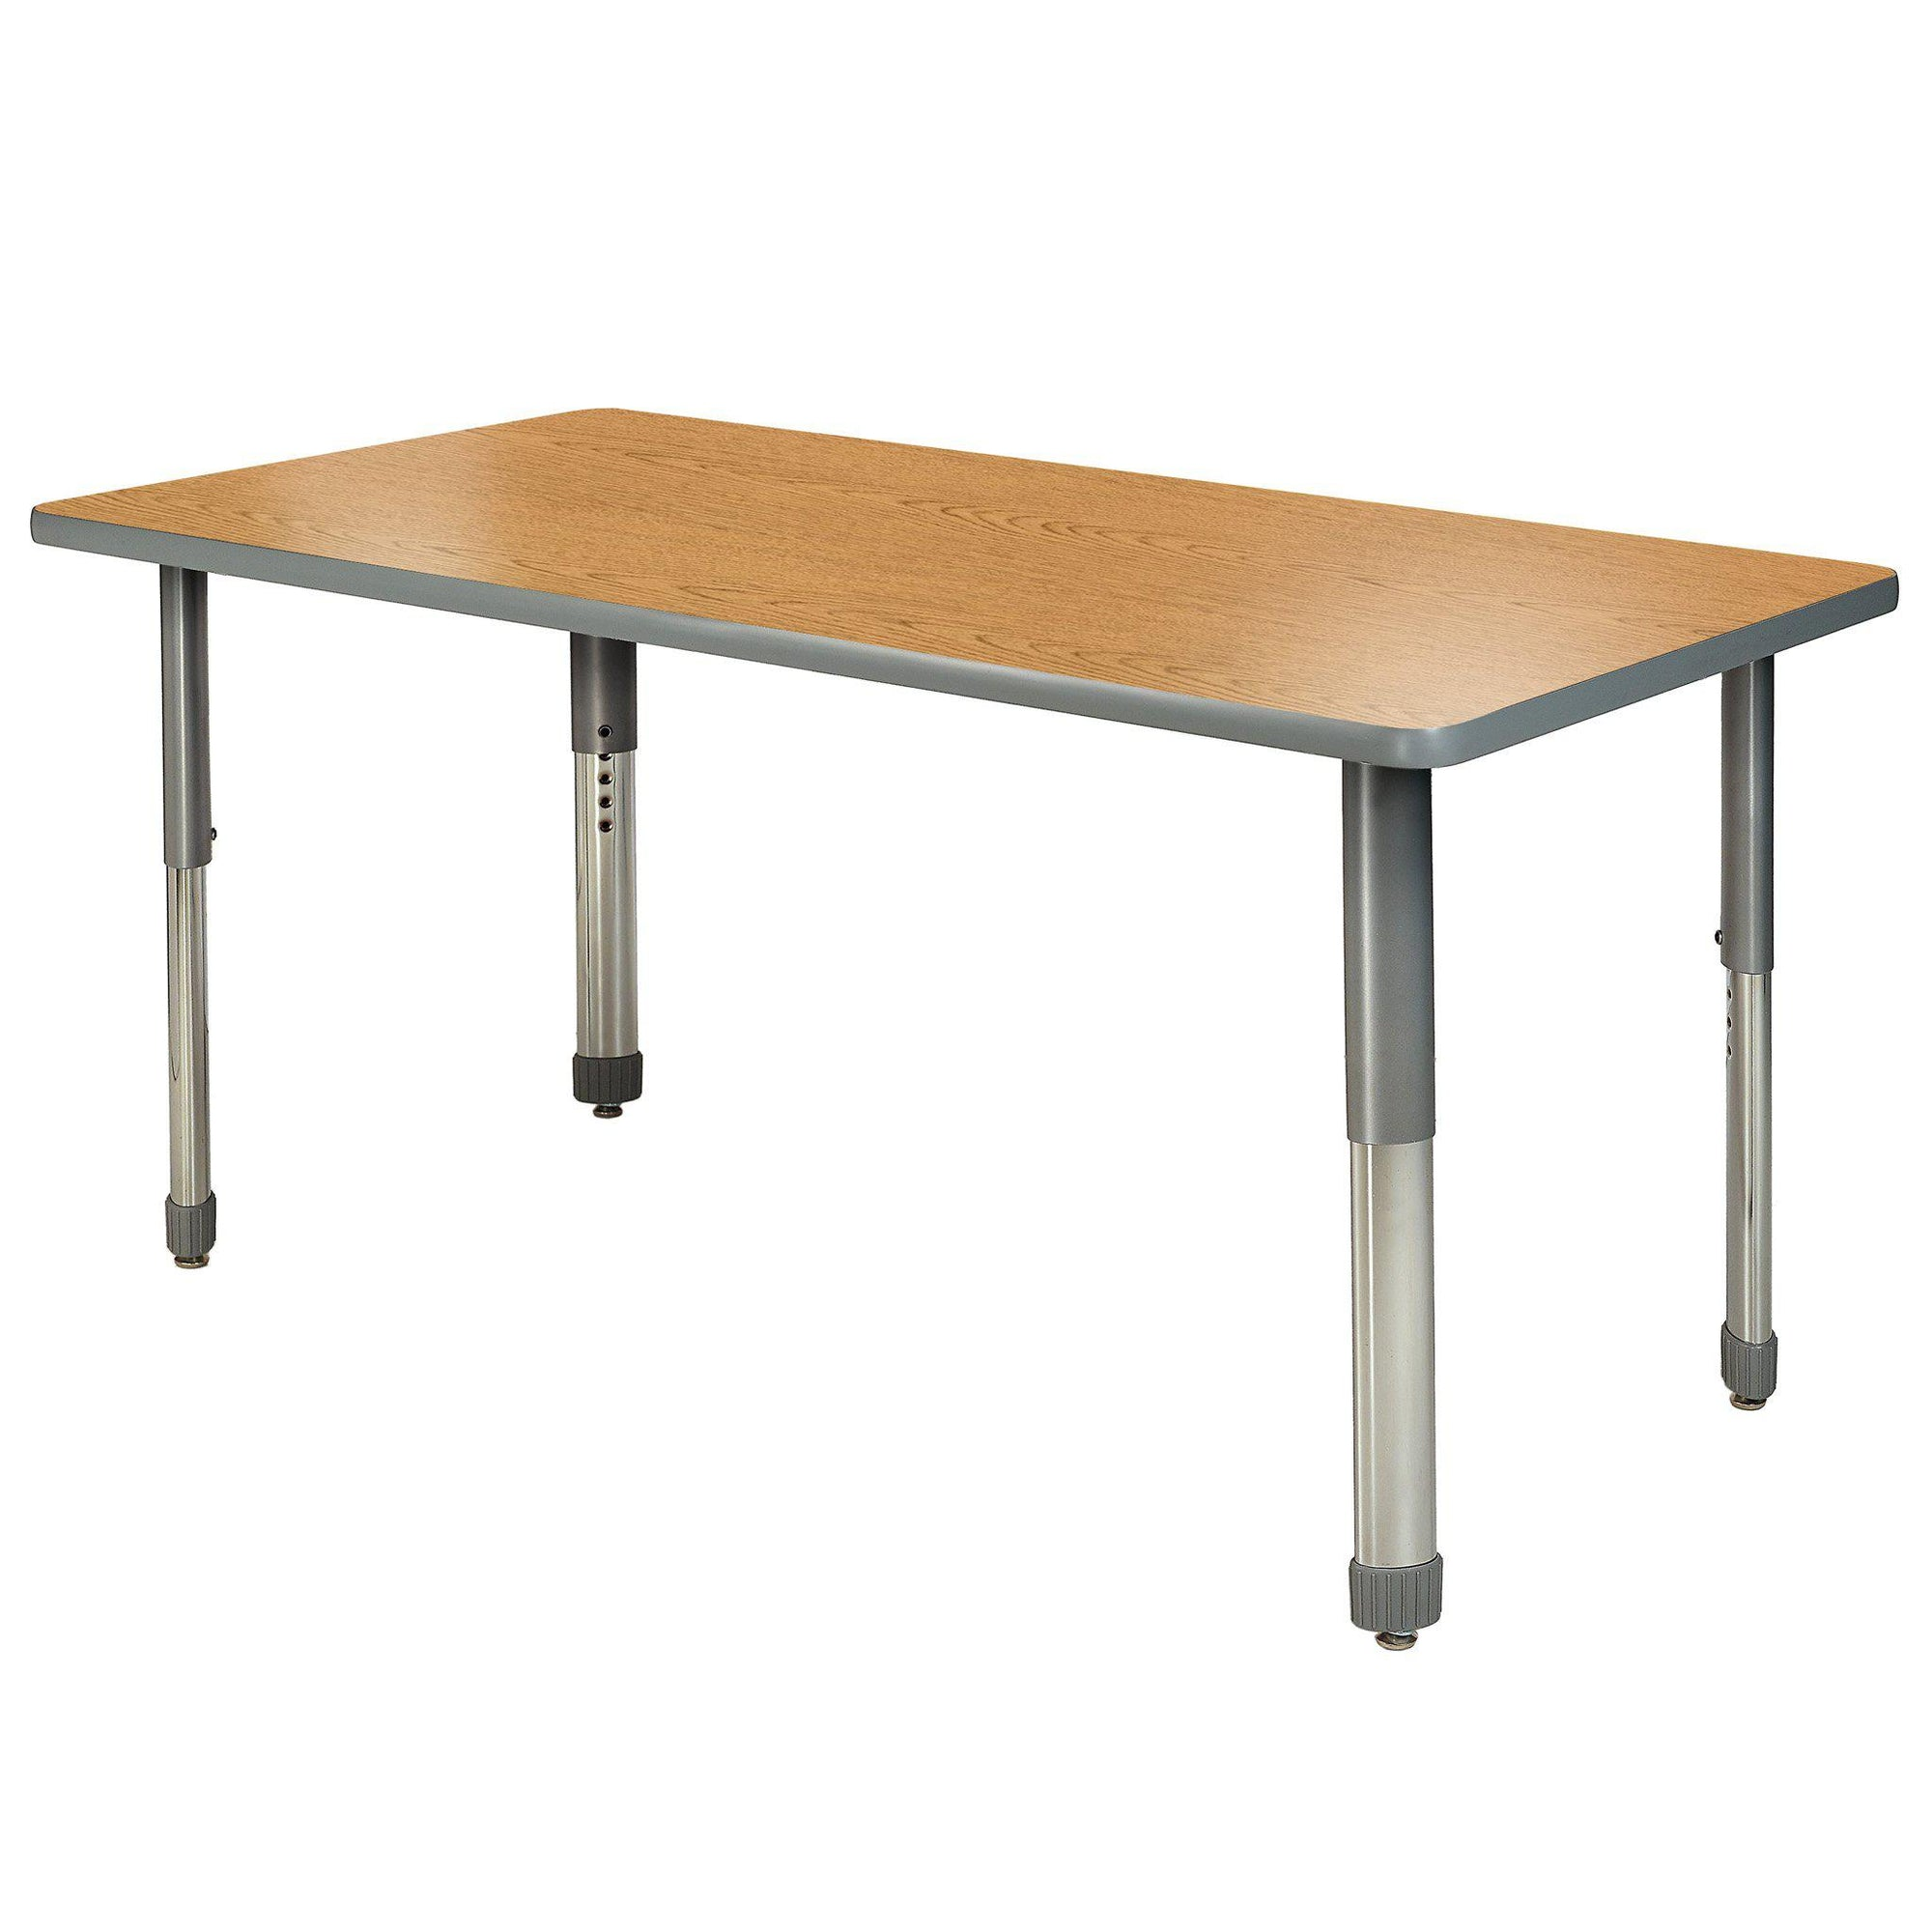 "Aero Activity Table, 36"" x 72"" Rectangle, Oval Adjustable Height Legs"